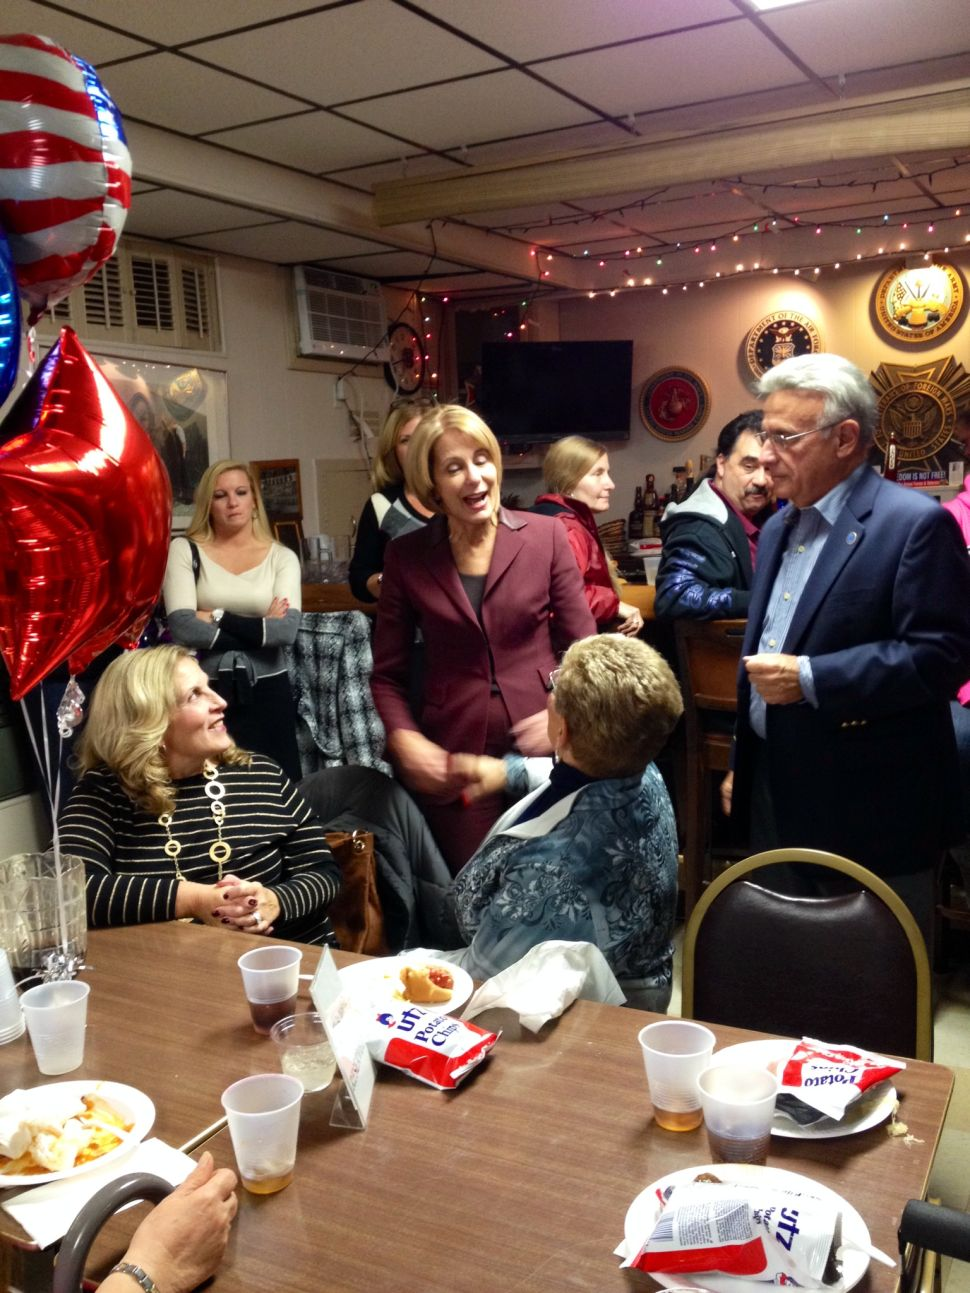 Buono rallies with Union Democrats on eve of election